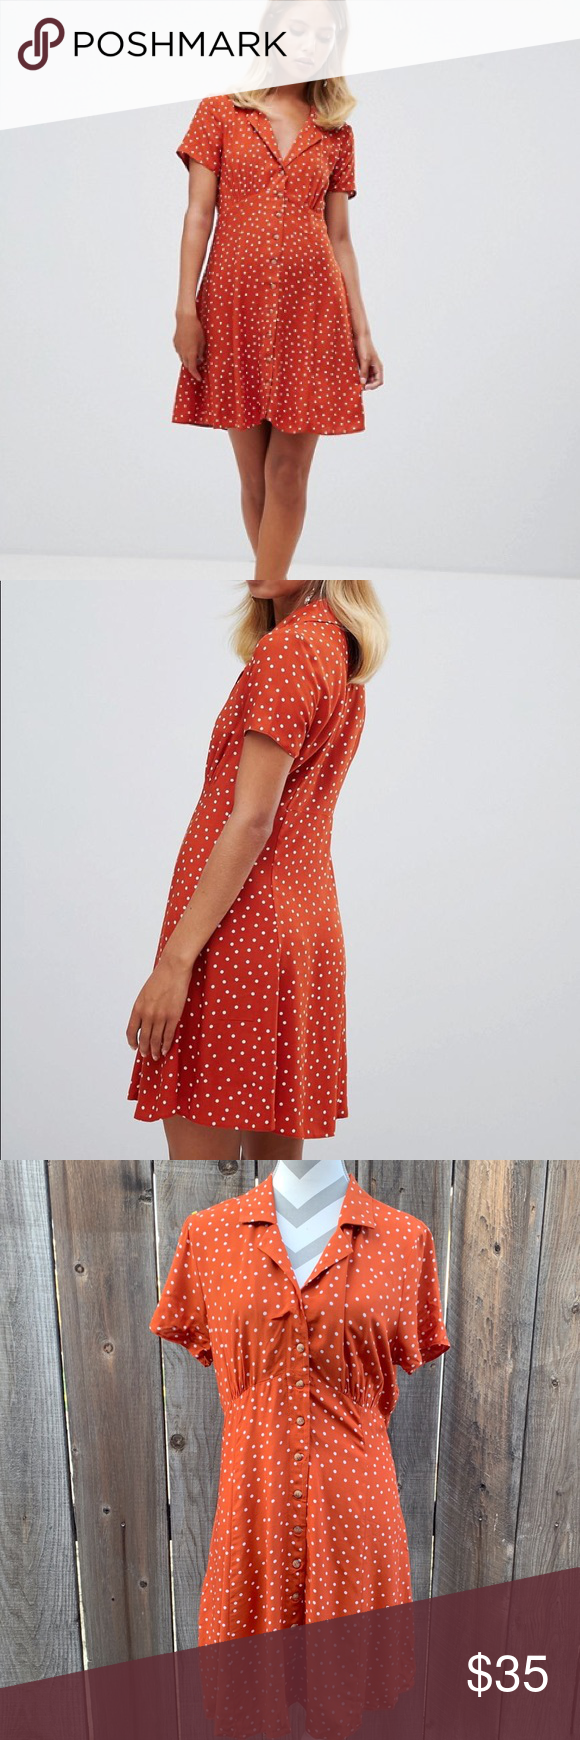 e96c166a ASOS | button down polka dot mini skater dress Brand new without tags US  size 12 Burnt orange with white polka dots button down skater dress No  flaws!